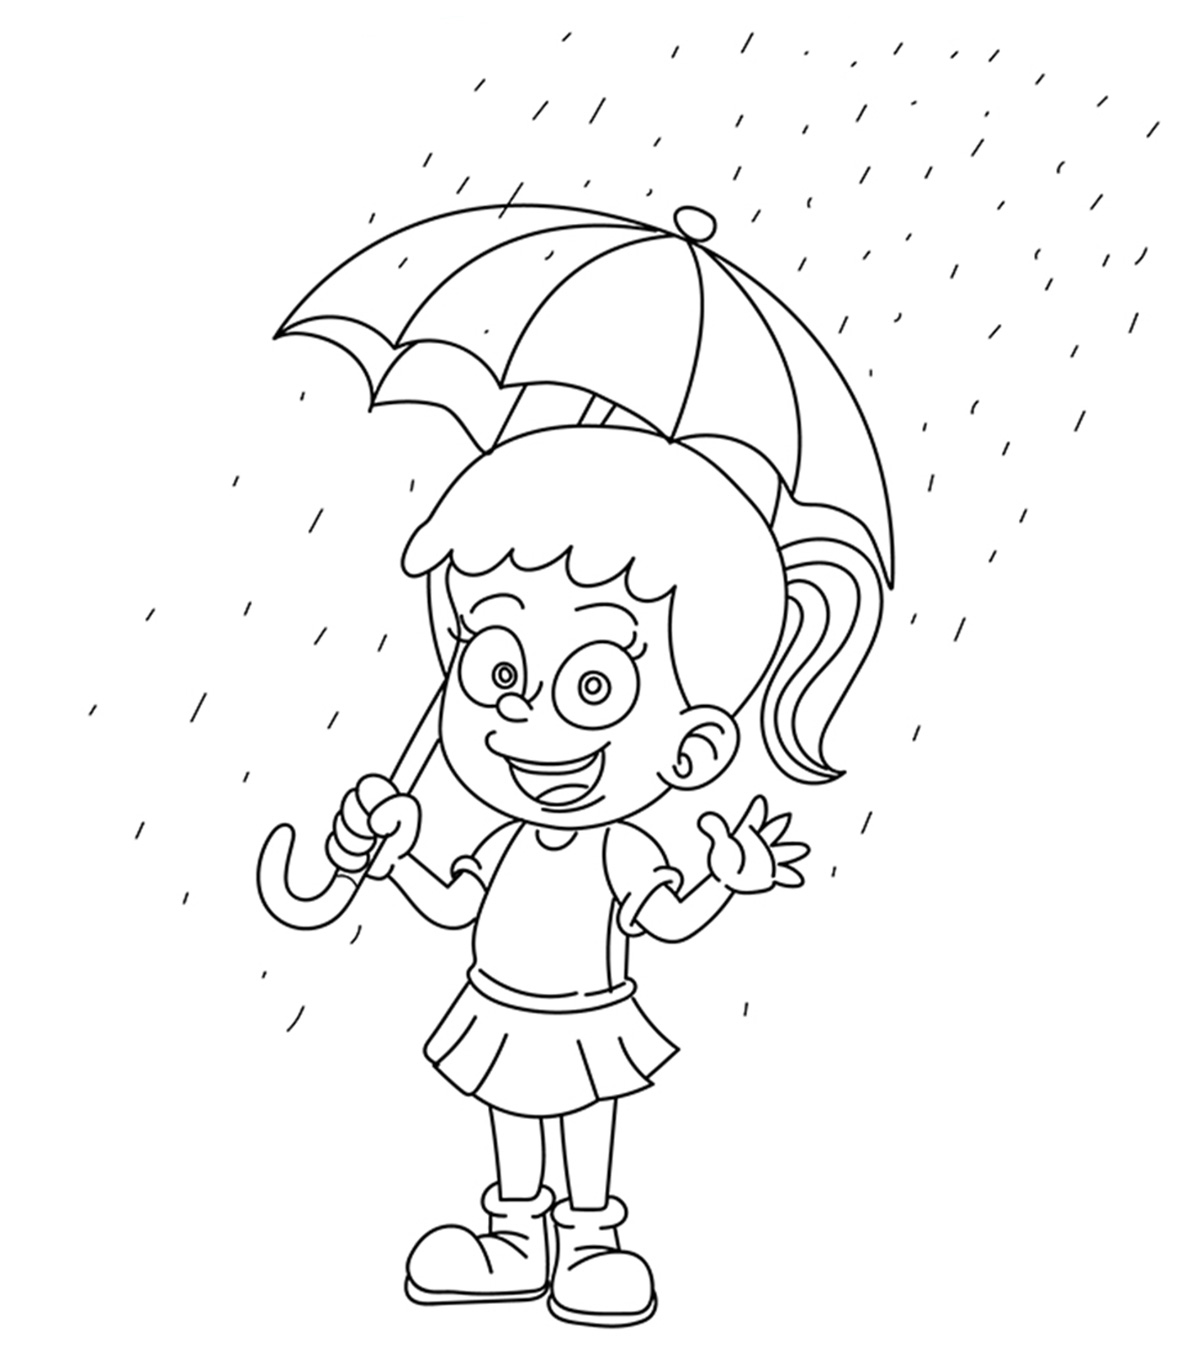 rainy day coloring pages for preschoolers best of rainy day coloring pages cool wallpaper preschoolers pages day for coloring rainy